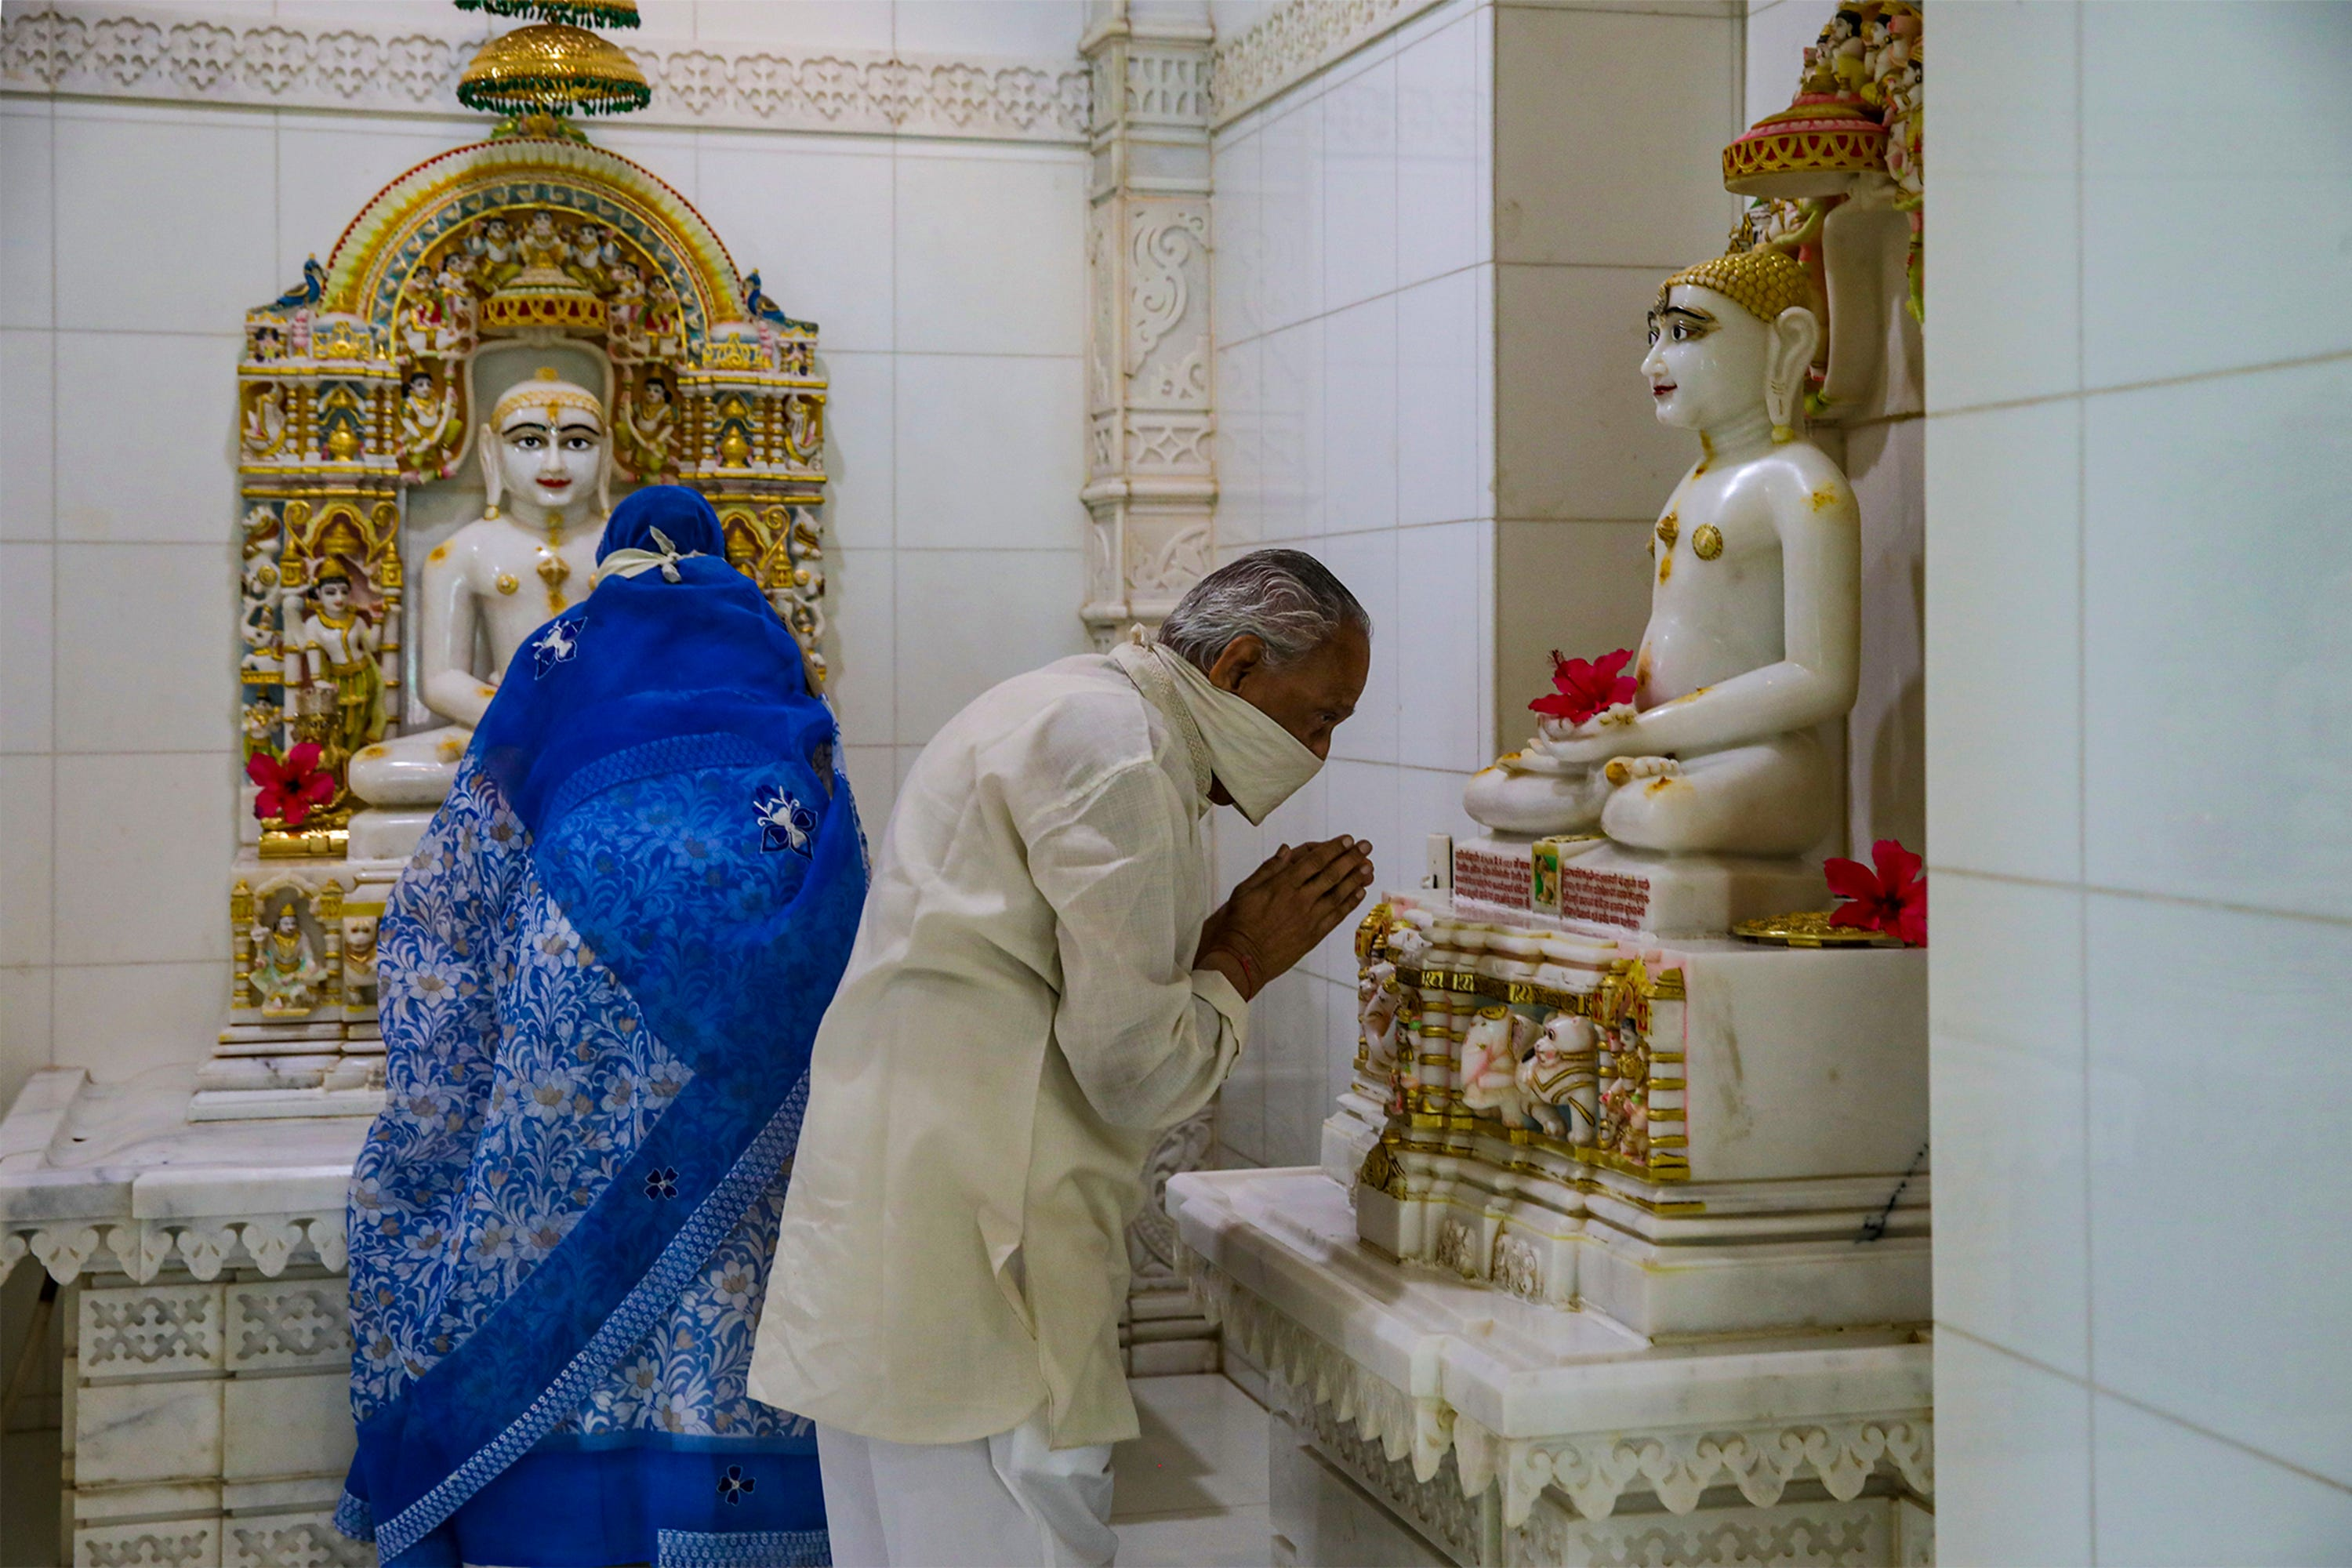 Little known outside India, Jainism spreads at colleges amid calls to 'decolonize' studies 1